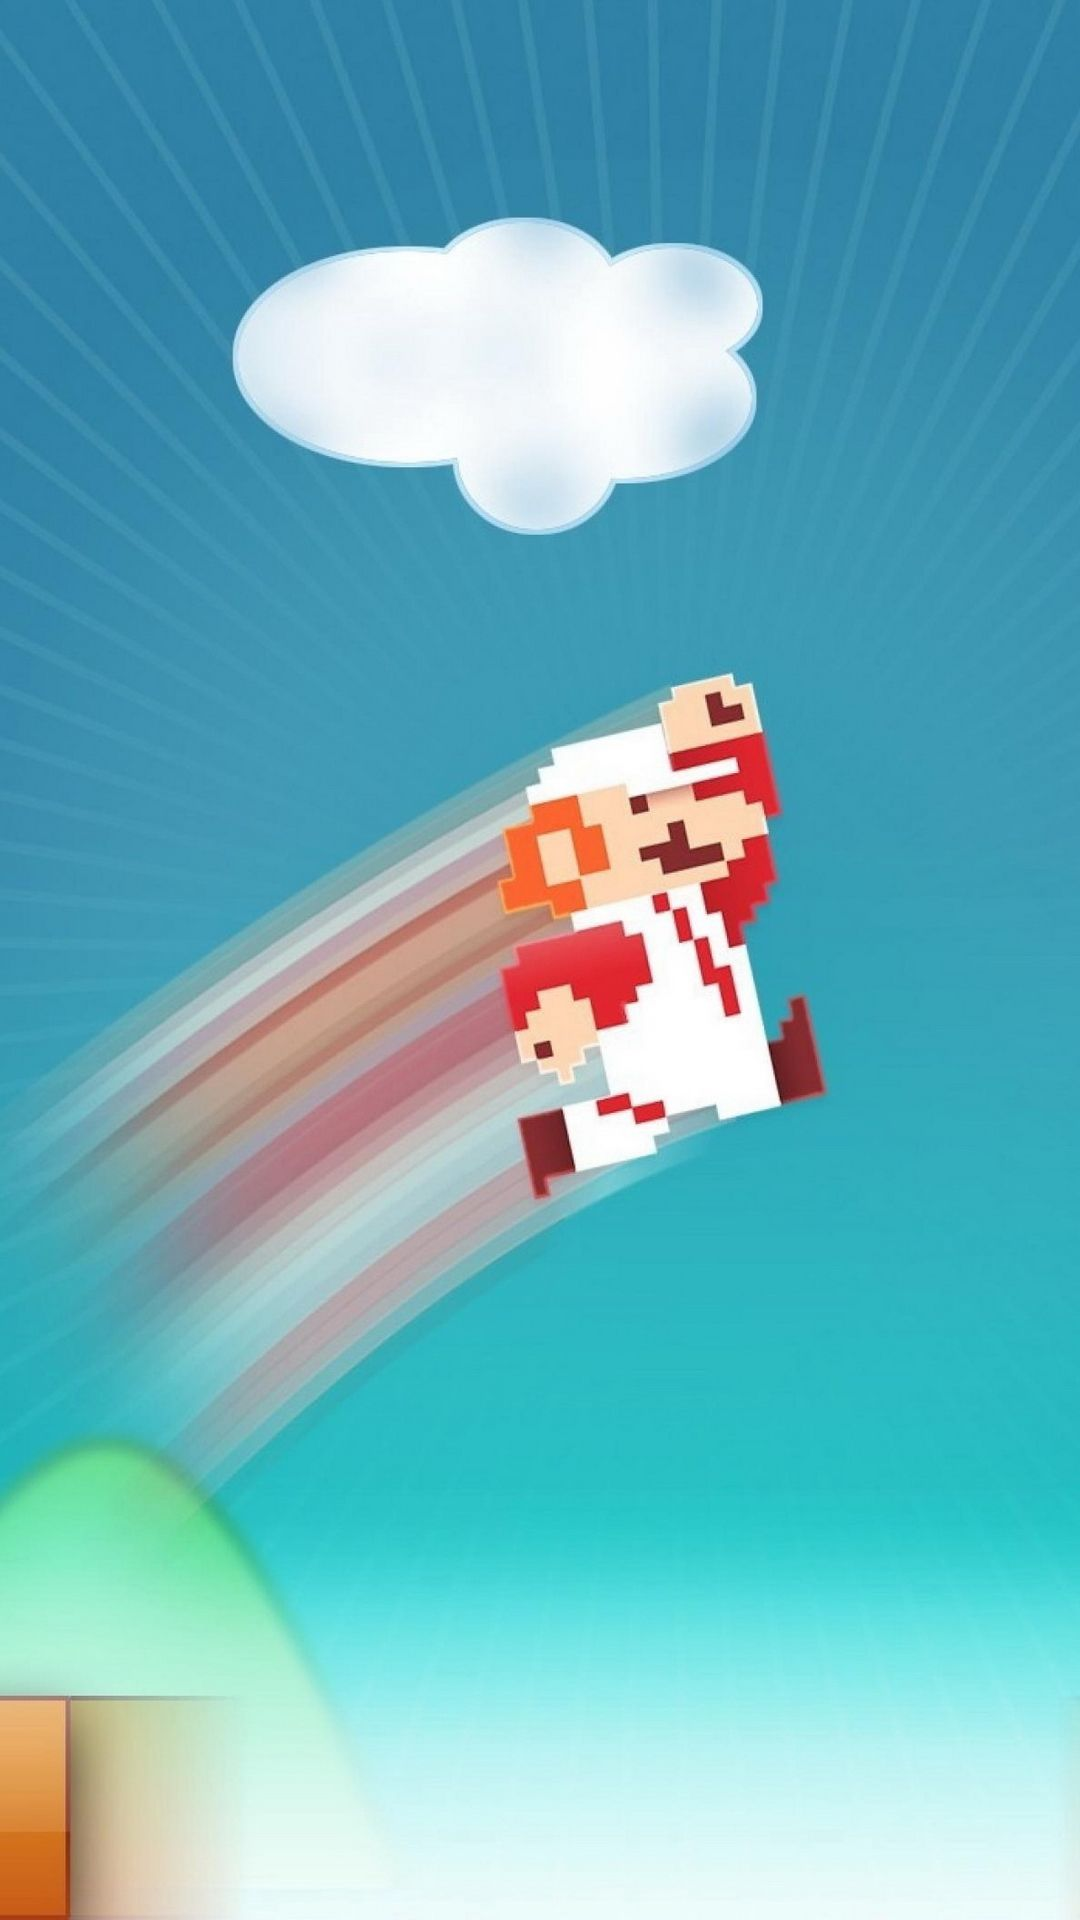 Super Mario ★ Find more nerdy #iPhone + #Android #Wallpapers and #Backgrounds at @prettywallpaper